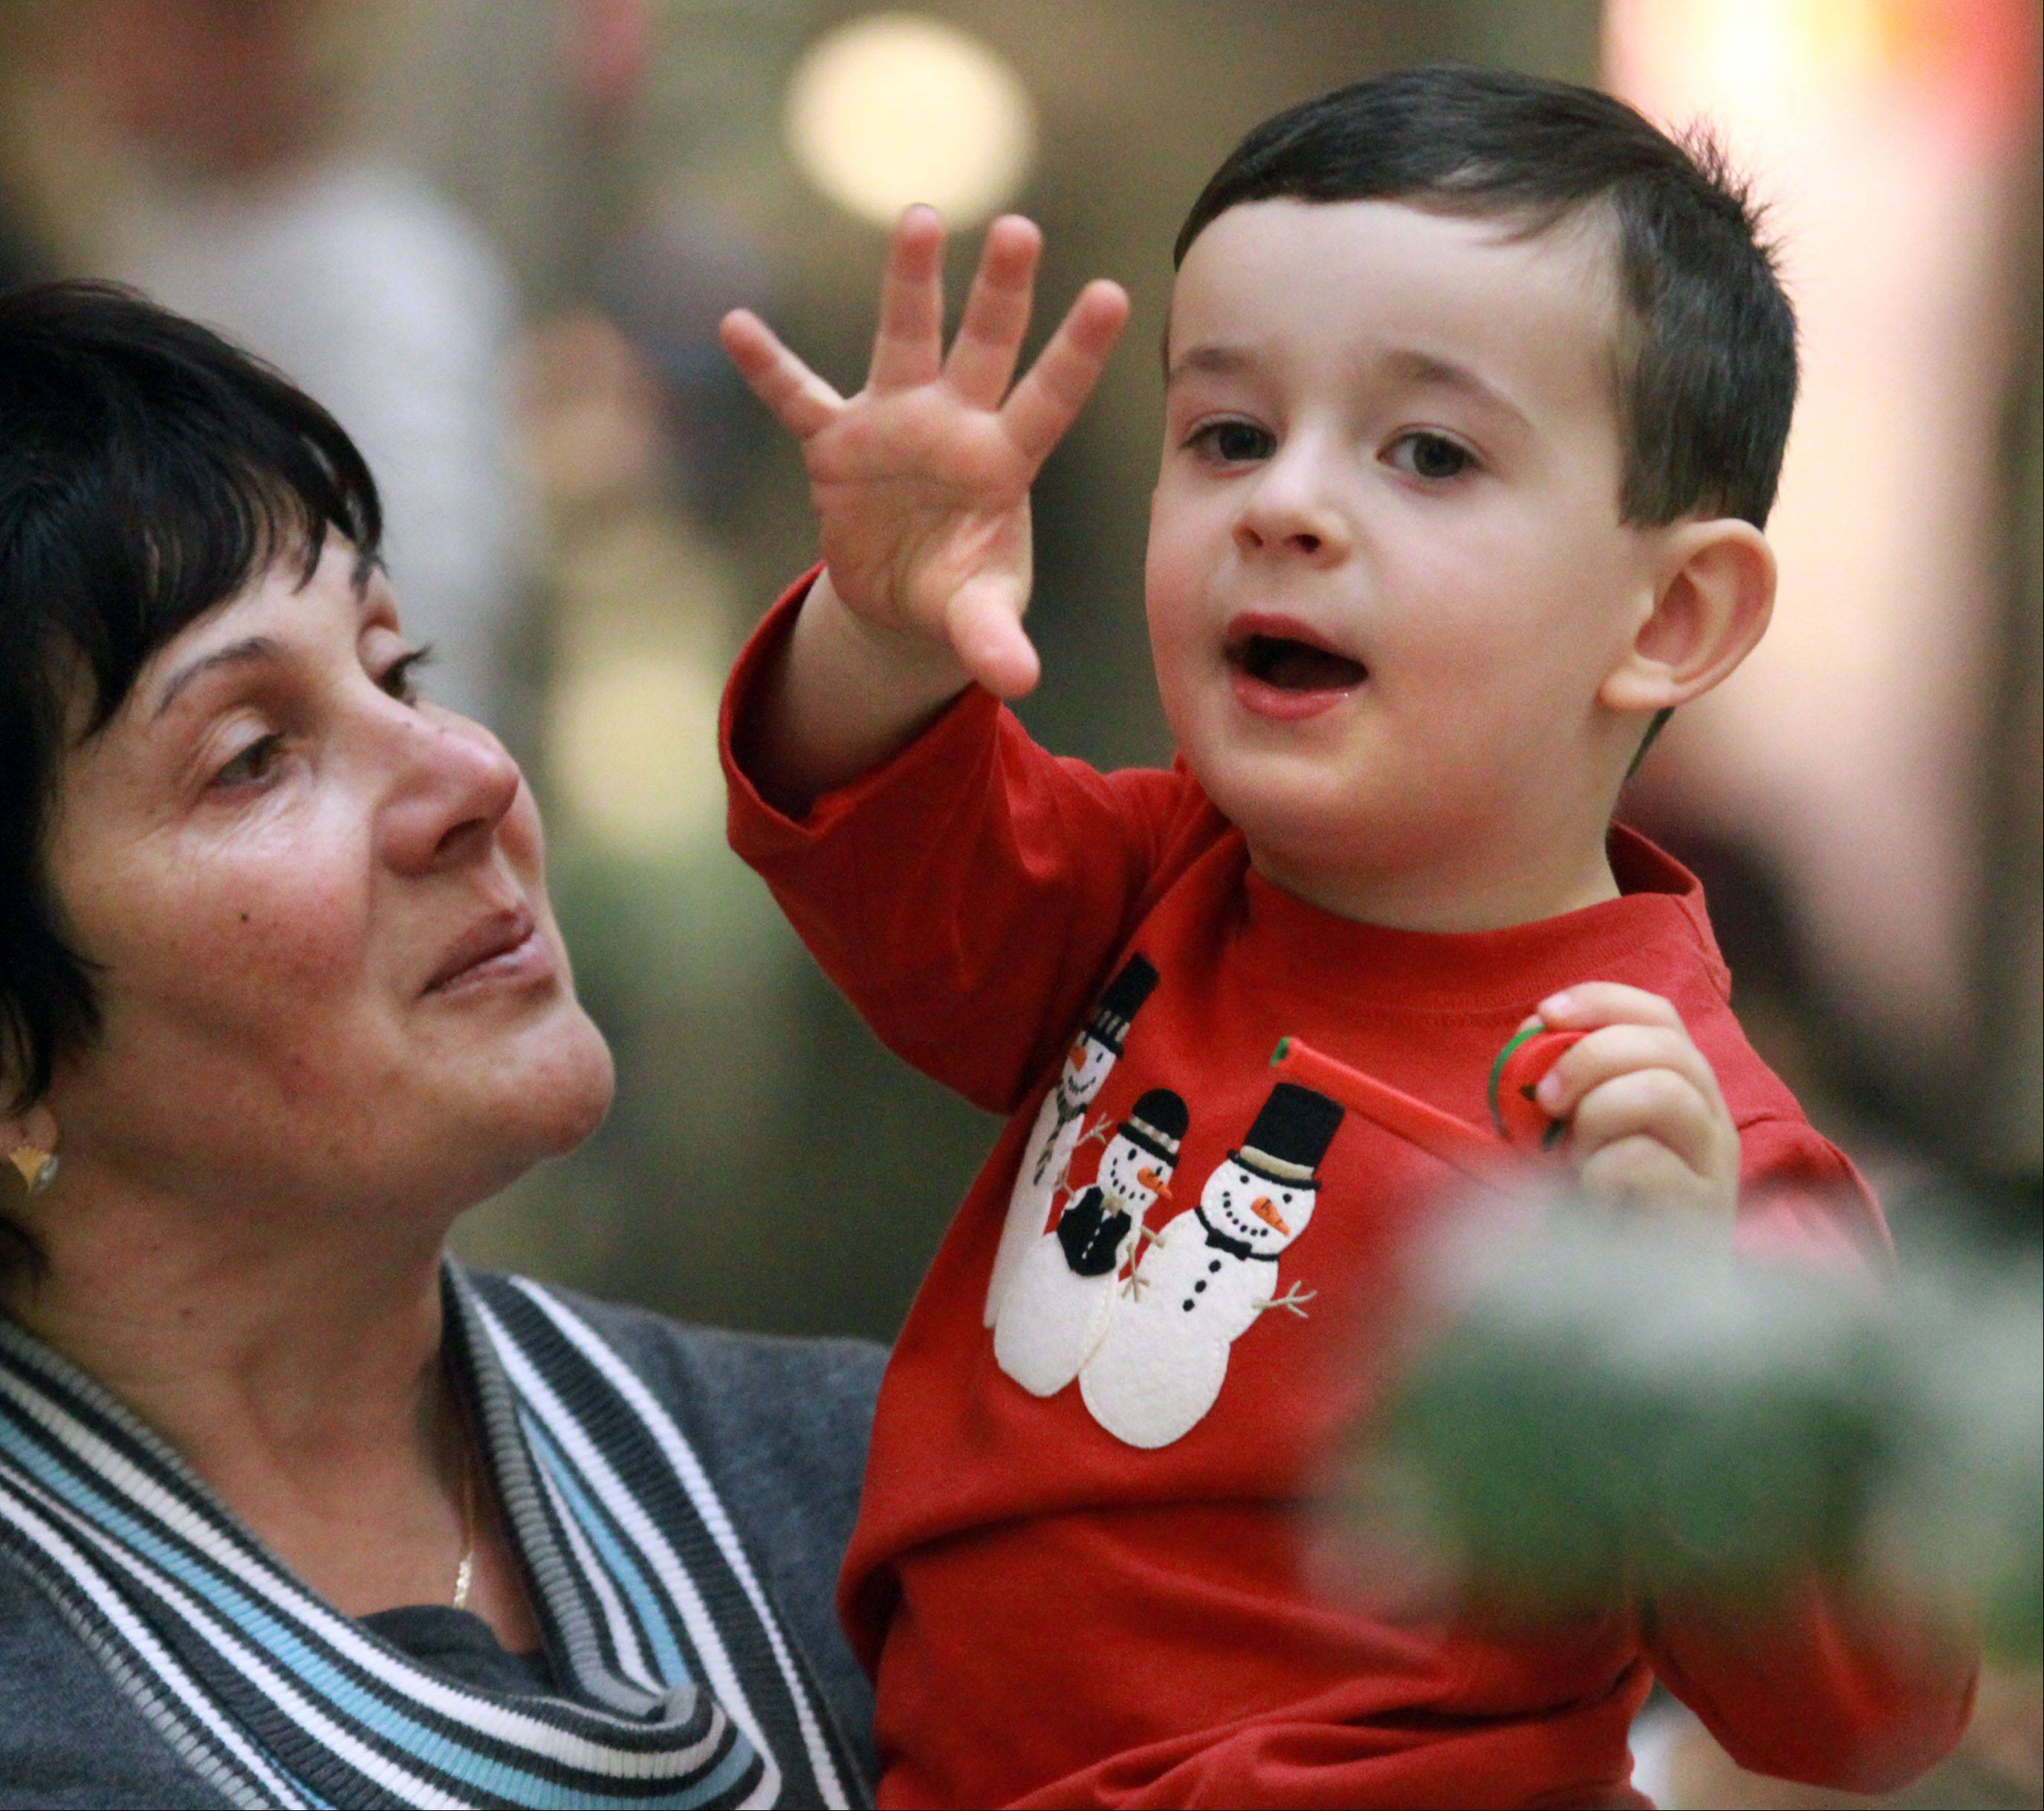 Daniel Stetsyk, 3, of Arlington Heights, is held by his grandmother Galina Stetsyk as he waves to Santa Claus during the parade at Woodfield Mall in Schaumburg on Thursday.